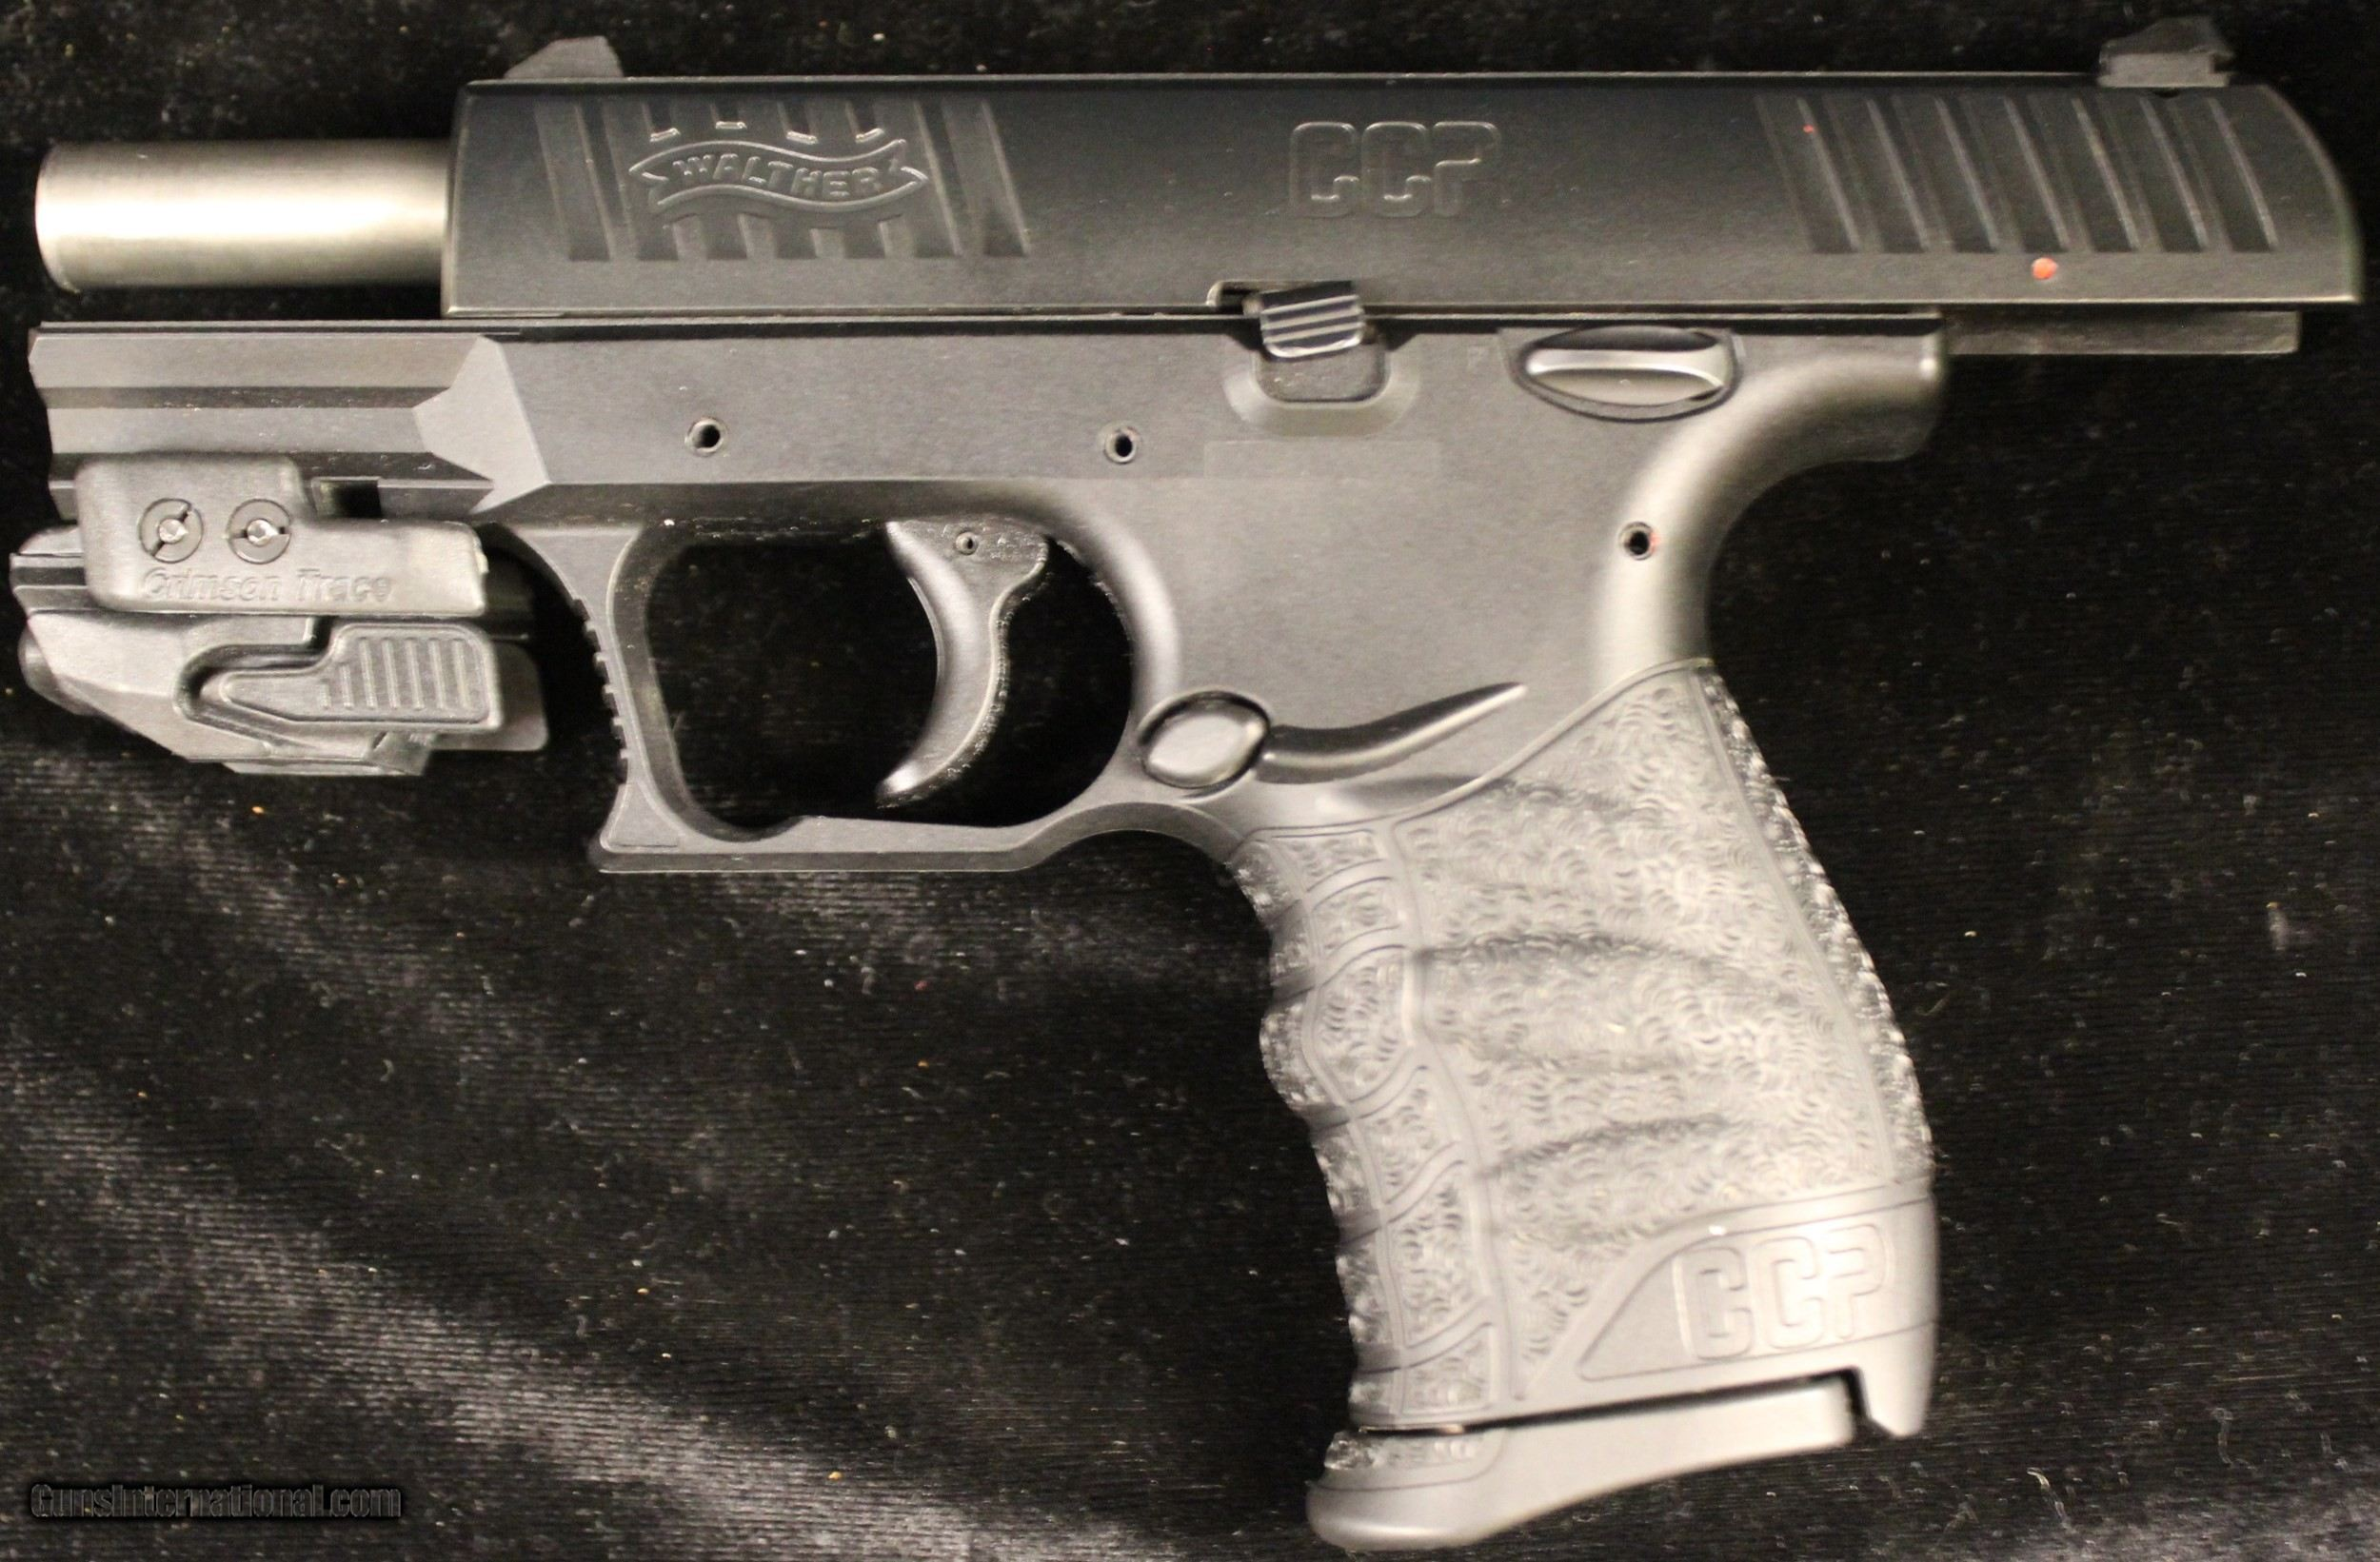 Walther CCP w/Crimson Trace Laser 9mm for sale